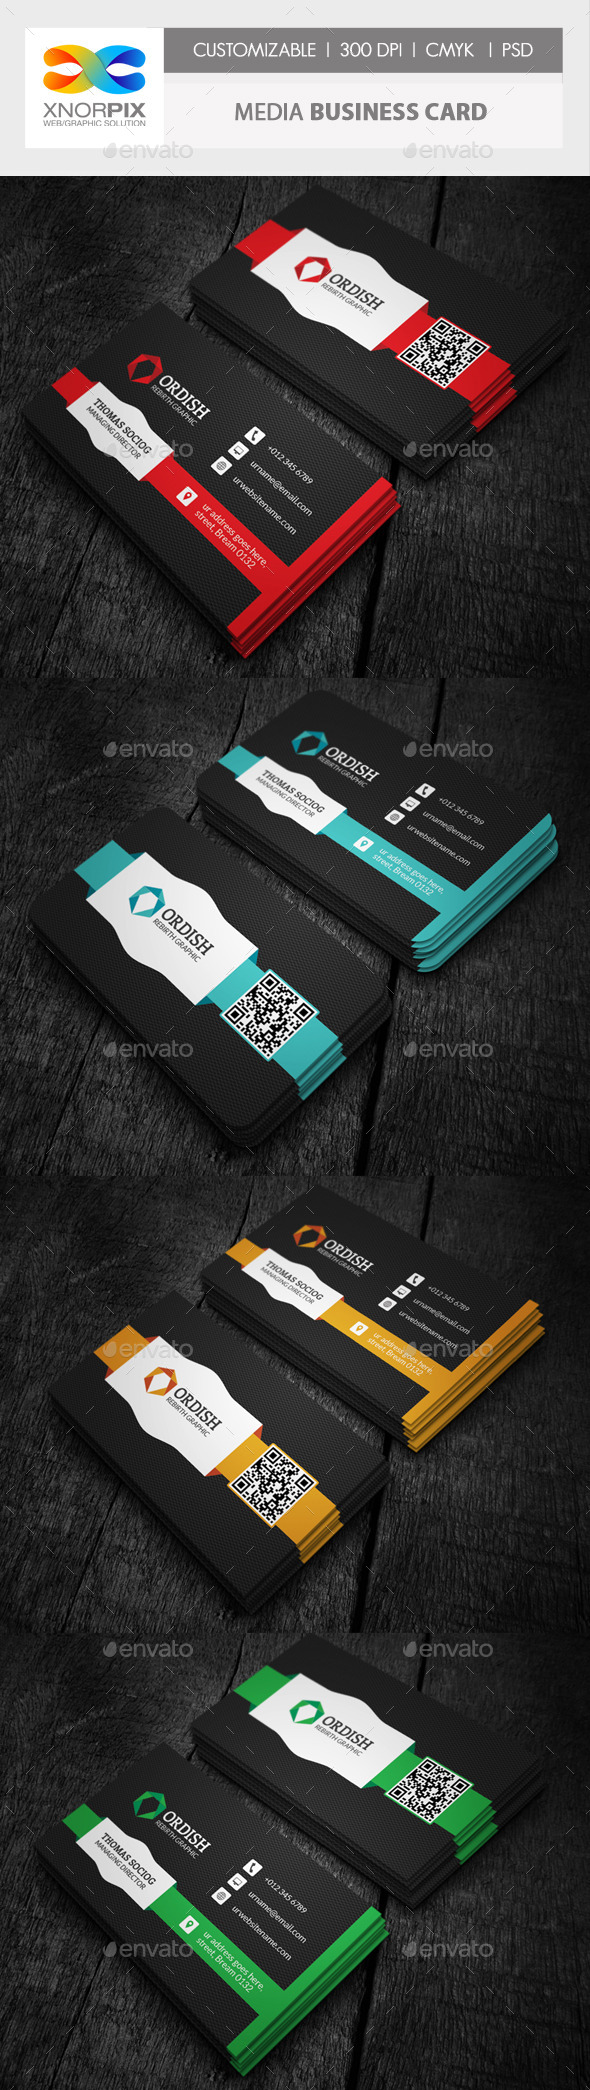 GraphicRiver Media Business Card 10052546